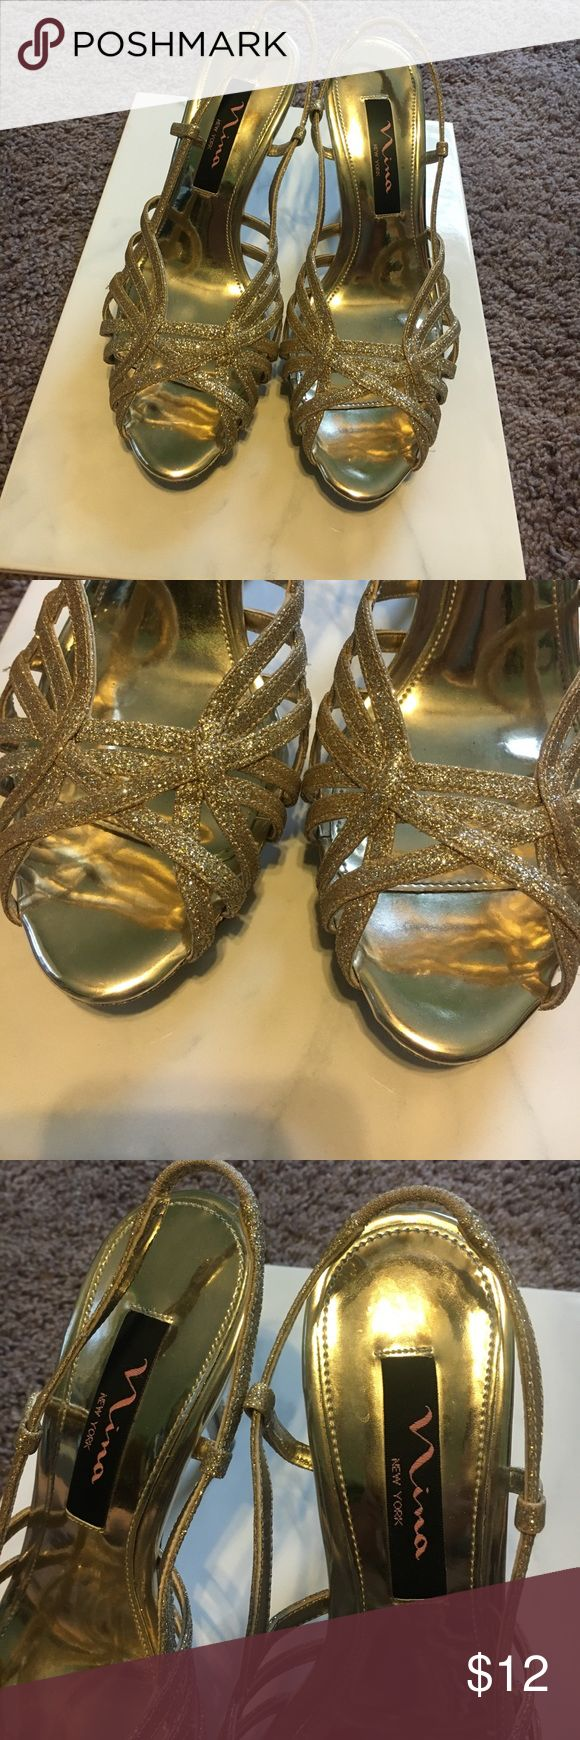 NINA SHOES GOLD SPARKLE OPEN TOE HEELS NINA SHOES GOLD SPARKLE OPRN TOE HEELS. WORN ONCE FOR PROM. Super pretty and easy to walk in due to small platform and elastic strap in the back making it easy to slip on and off. Peep toe, with leather sole. Only sign of wear is on the bottom. Sure to make any girl feel glamorous!💕 Nina Shoes Shoes Heels